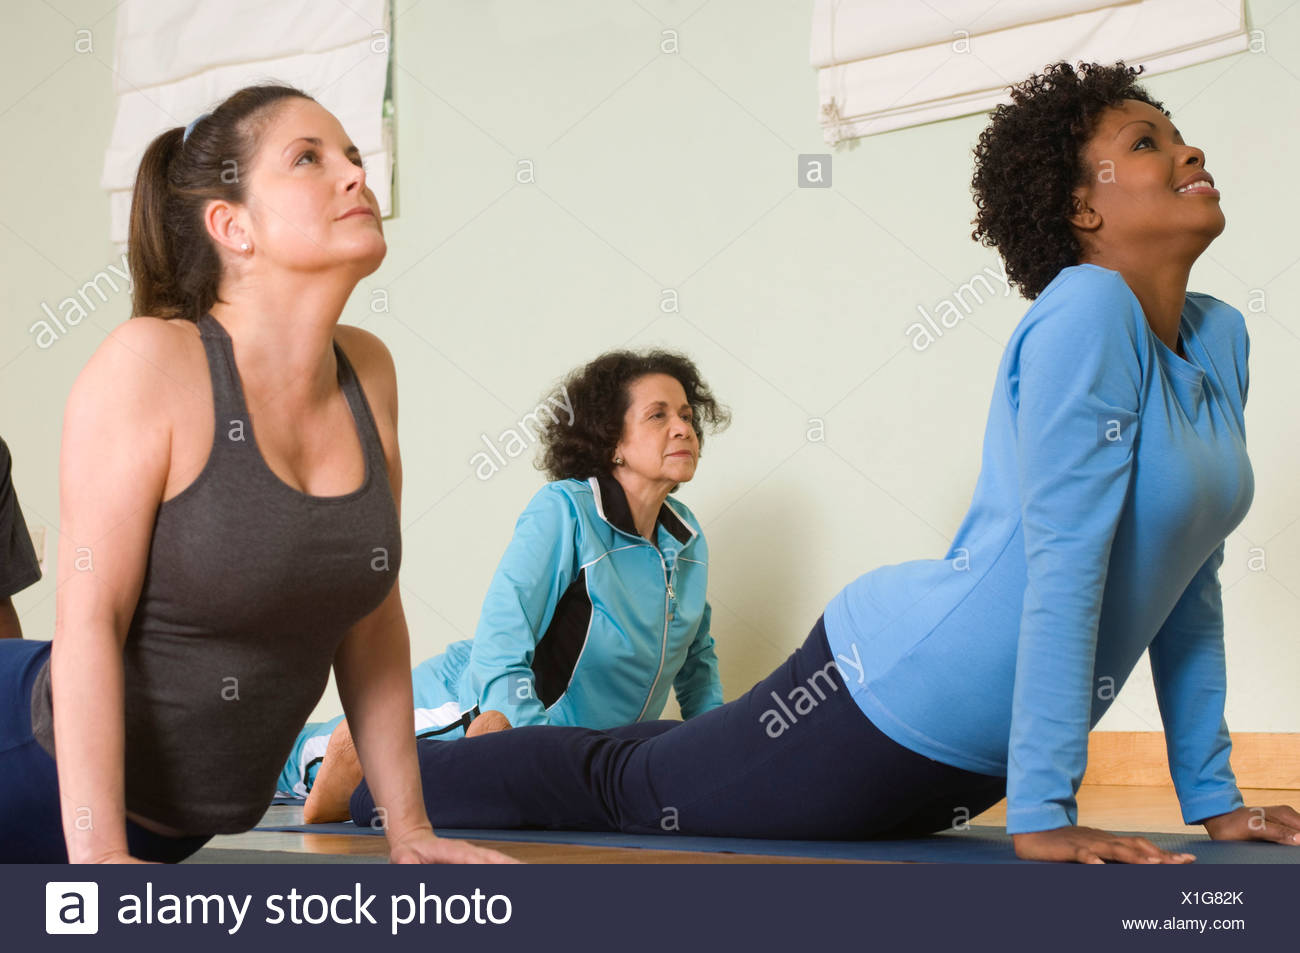 Women Stretching Backs in Yoga Class - Stock Image